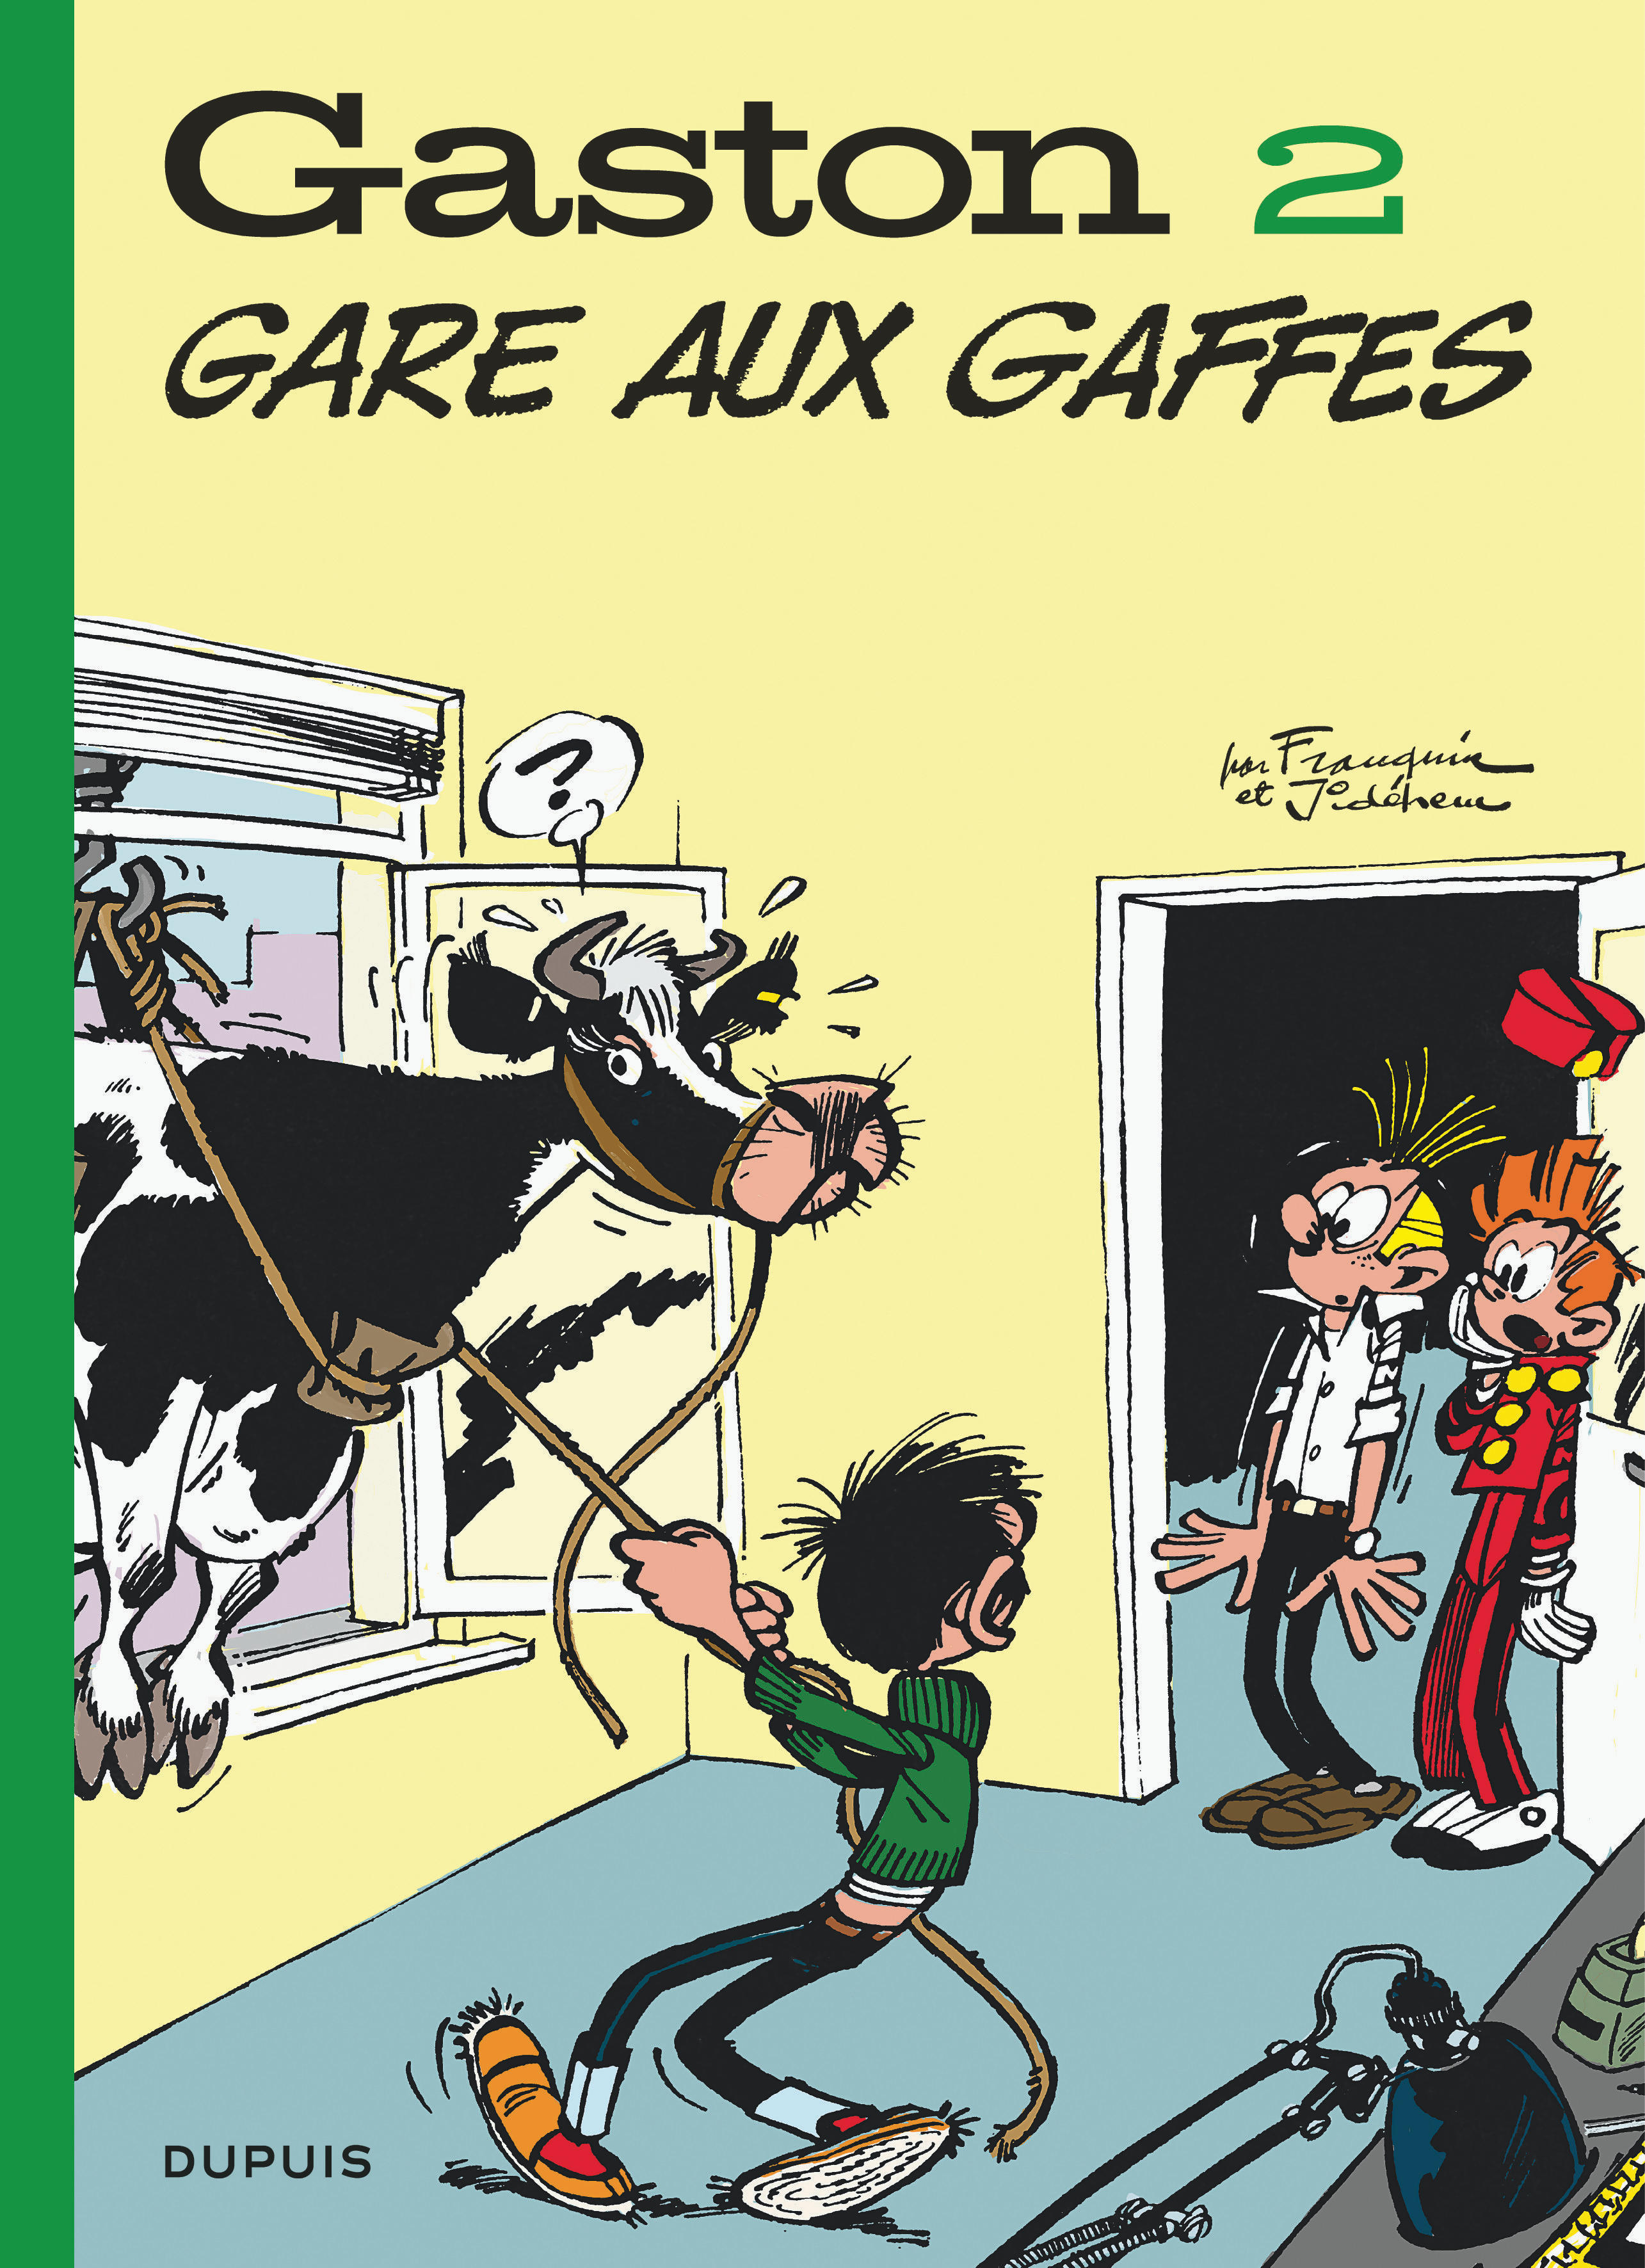 GASTON (EDITION 2018) T2 GASTON (EDITION 2018) - TOME 2 - GARE AUX GAFFES (EDITION 2018)